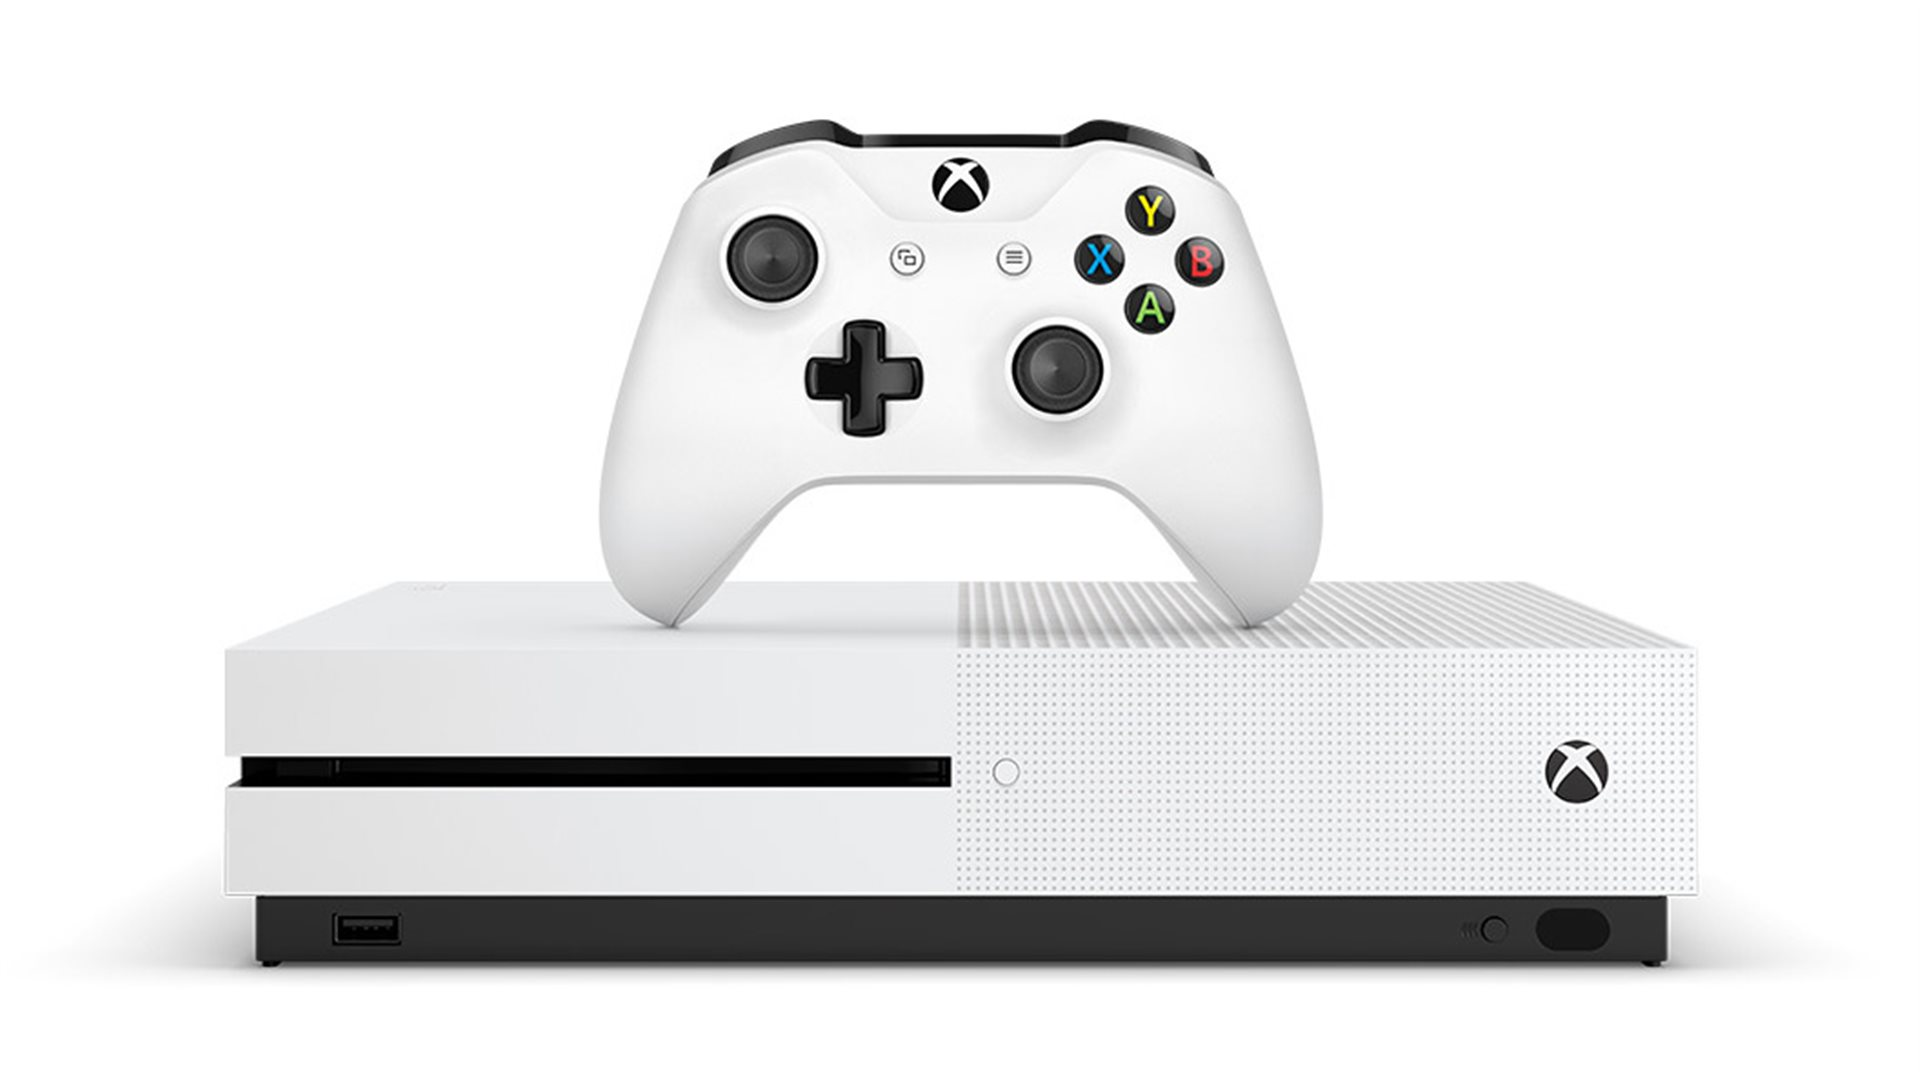 XBOX ONE S 1 TB + PlayerUnknown's Battlegrounds (PUBG) - price drop promo + 2 hry ZDARMA